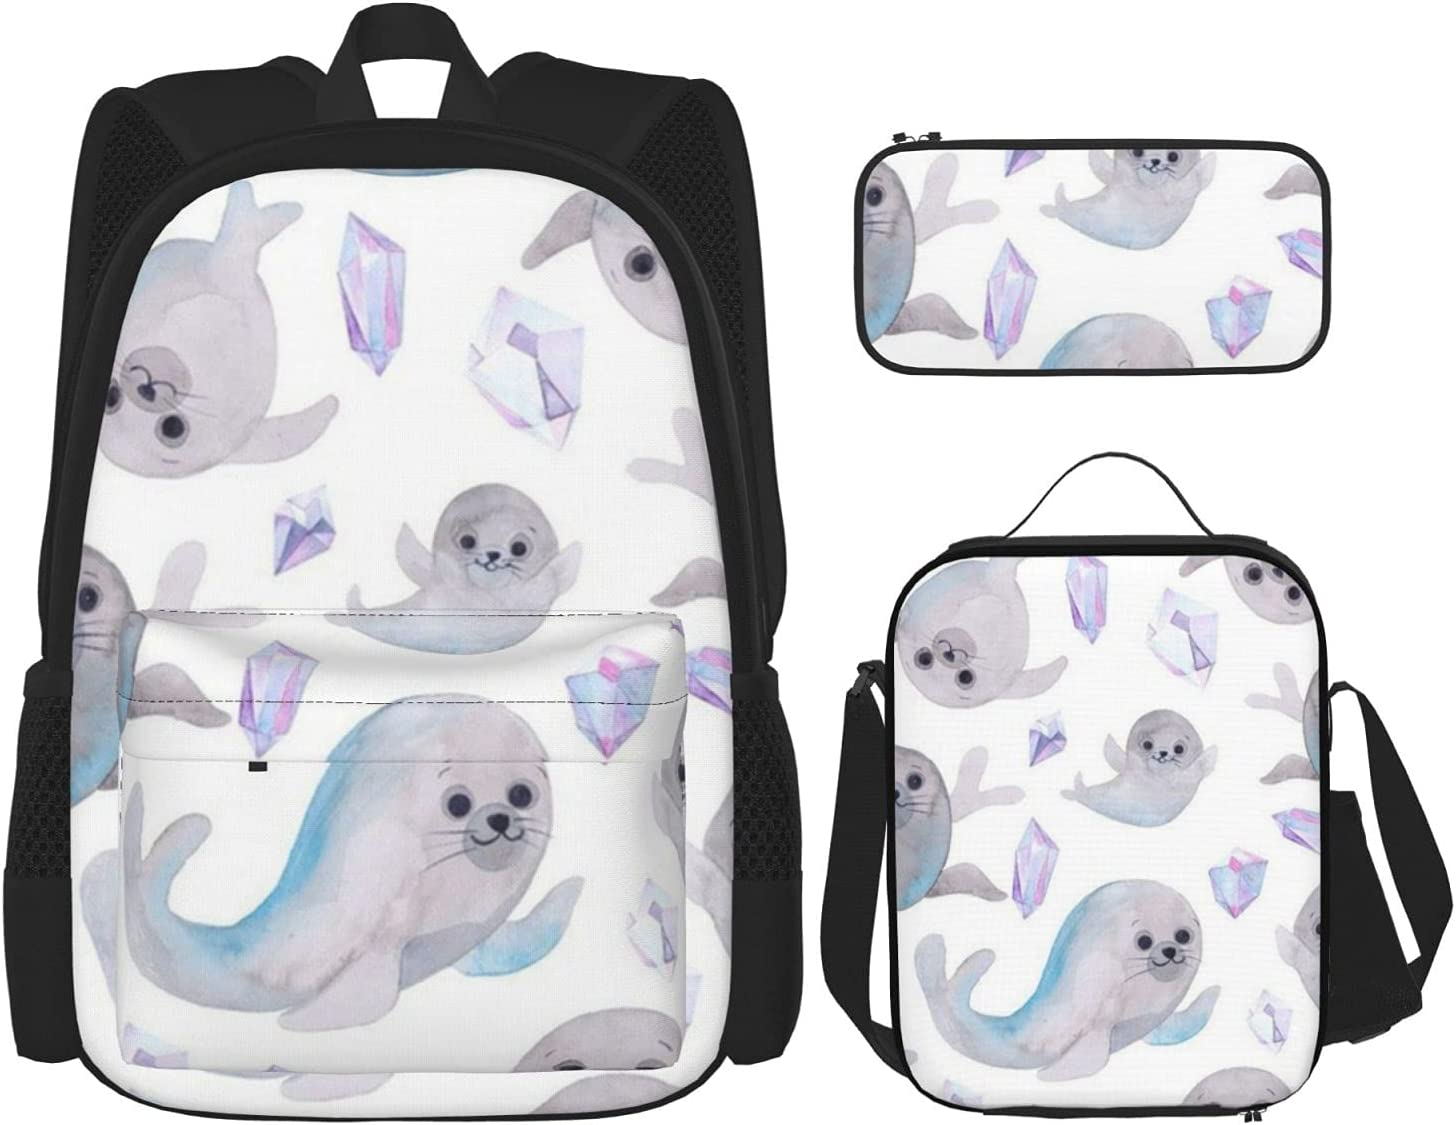 Backpack Bags Seal Time On White with Milwaukee Mall Case Lunch Bag San Diego Mall Pencil